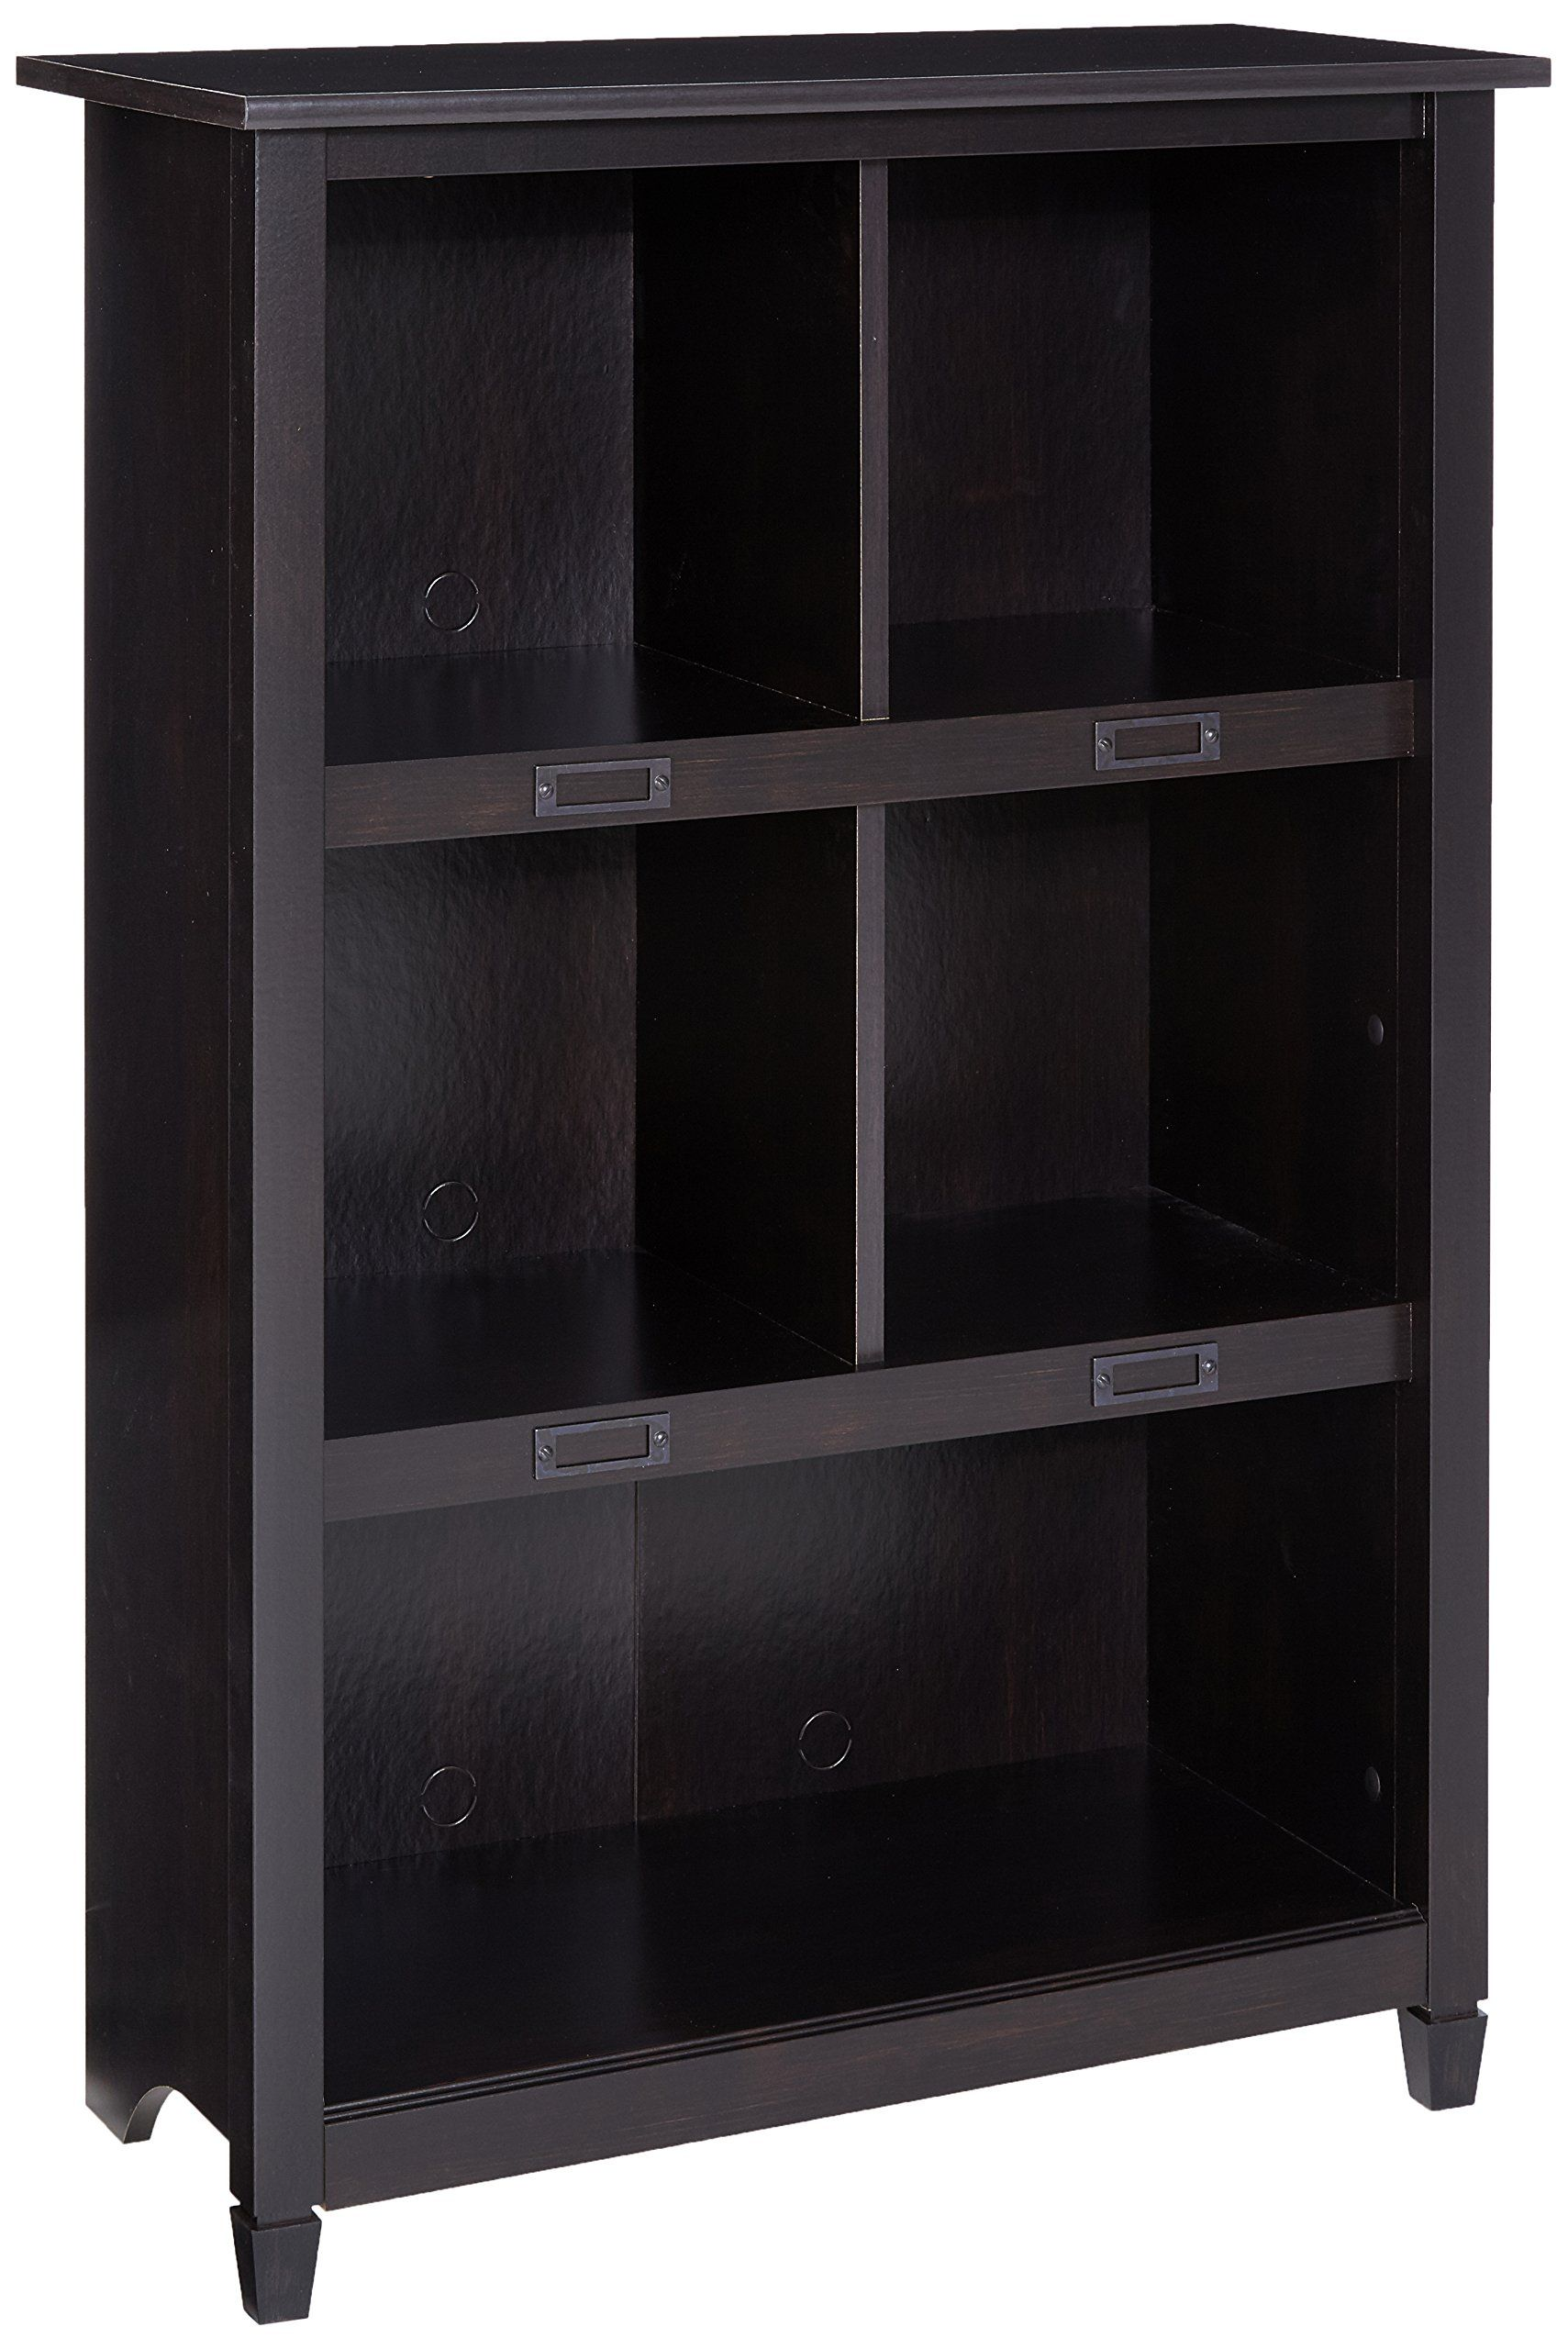 Sauder Edge Water Bookcase Estate Black Click On The Image For Additional Details It Is Affiliate Link Homeofficedecorideas